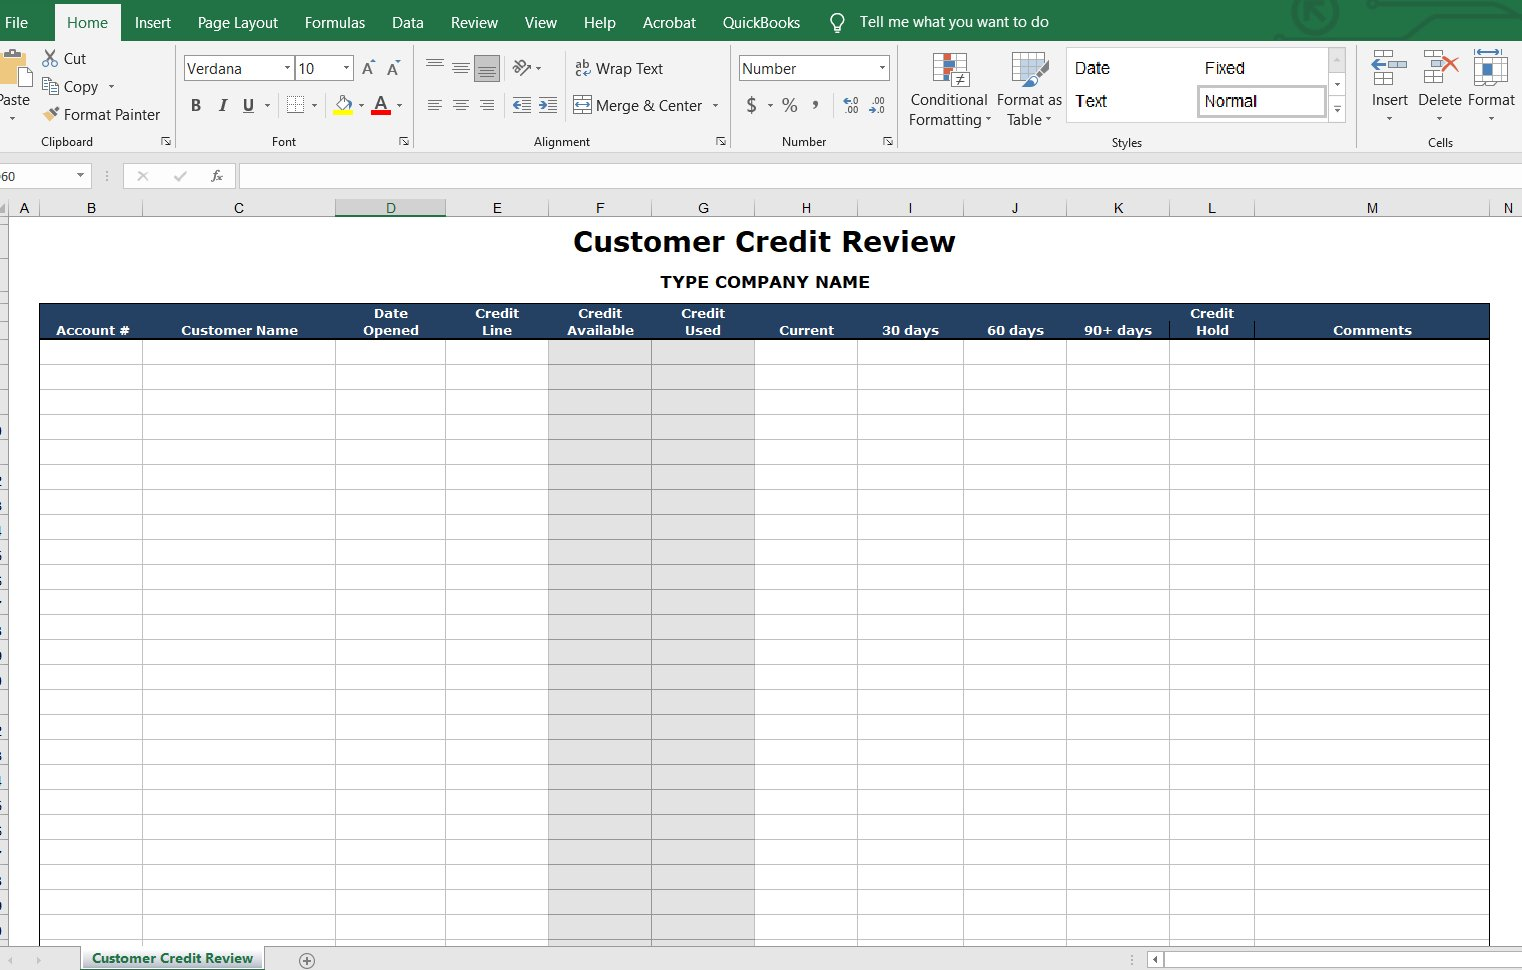 Customer Credit Review Form